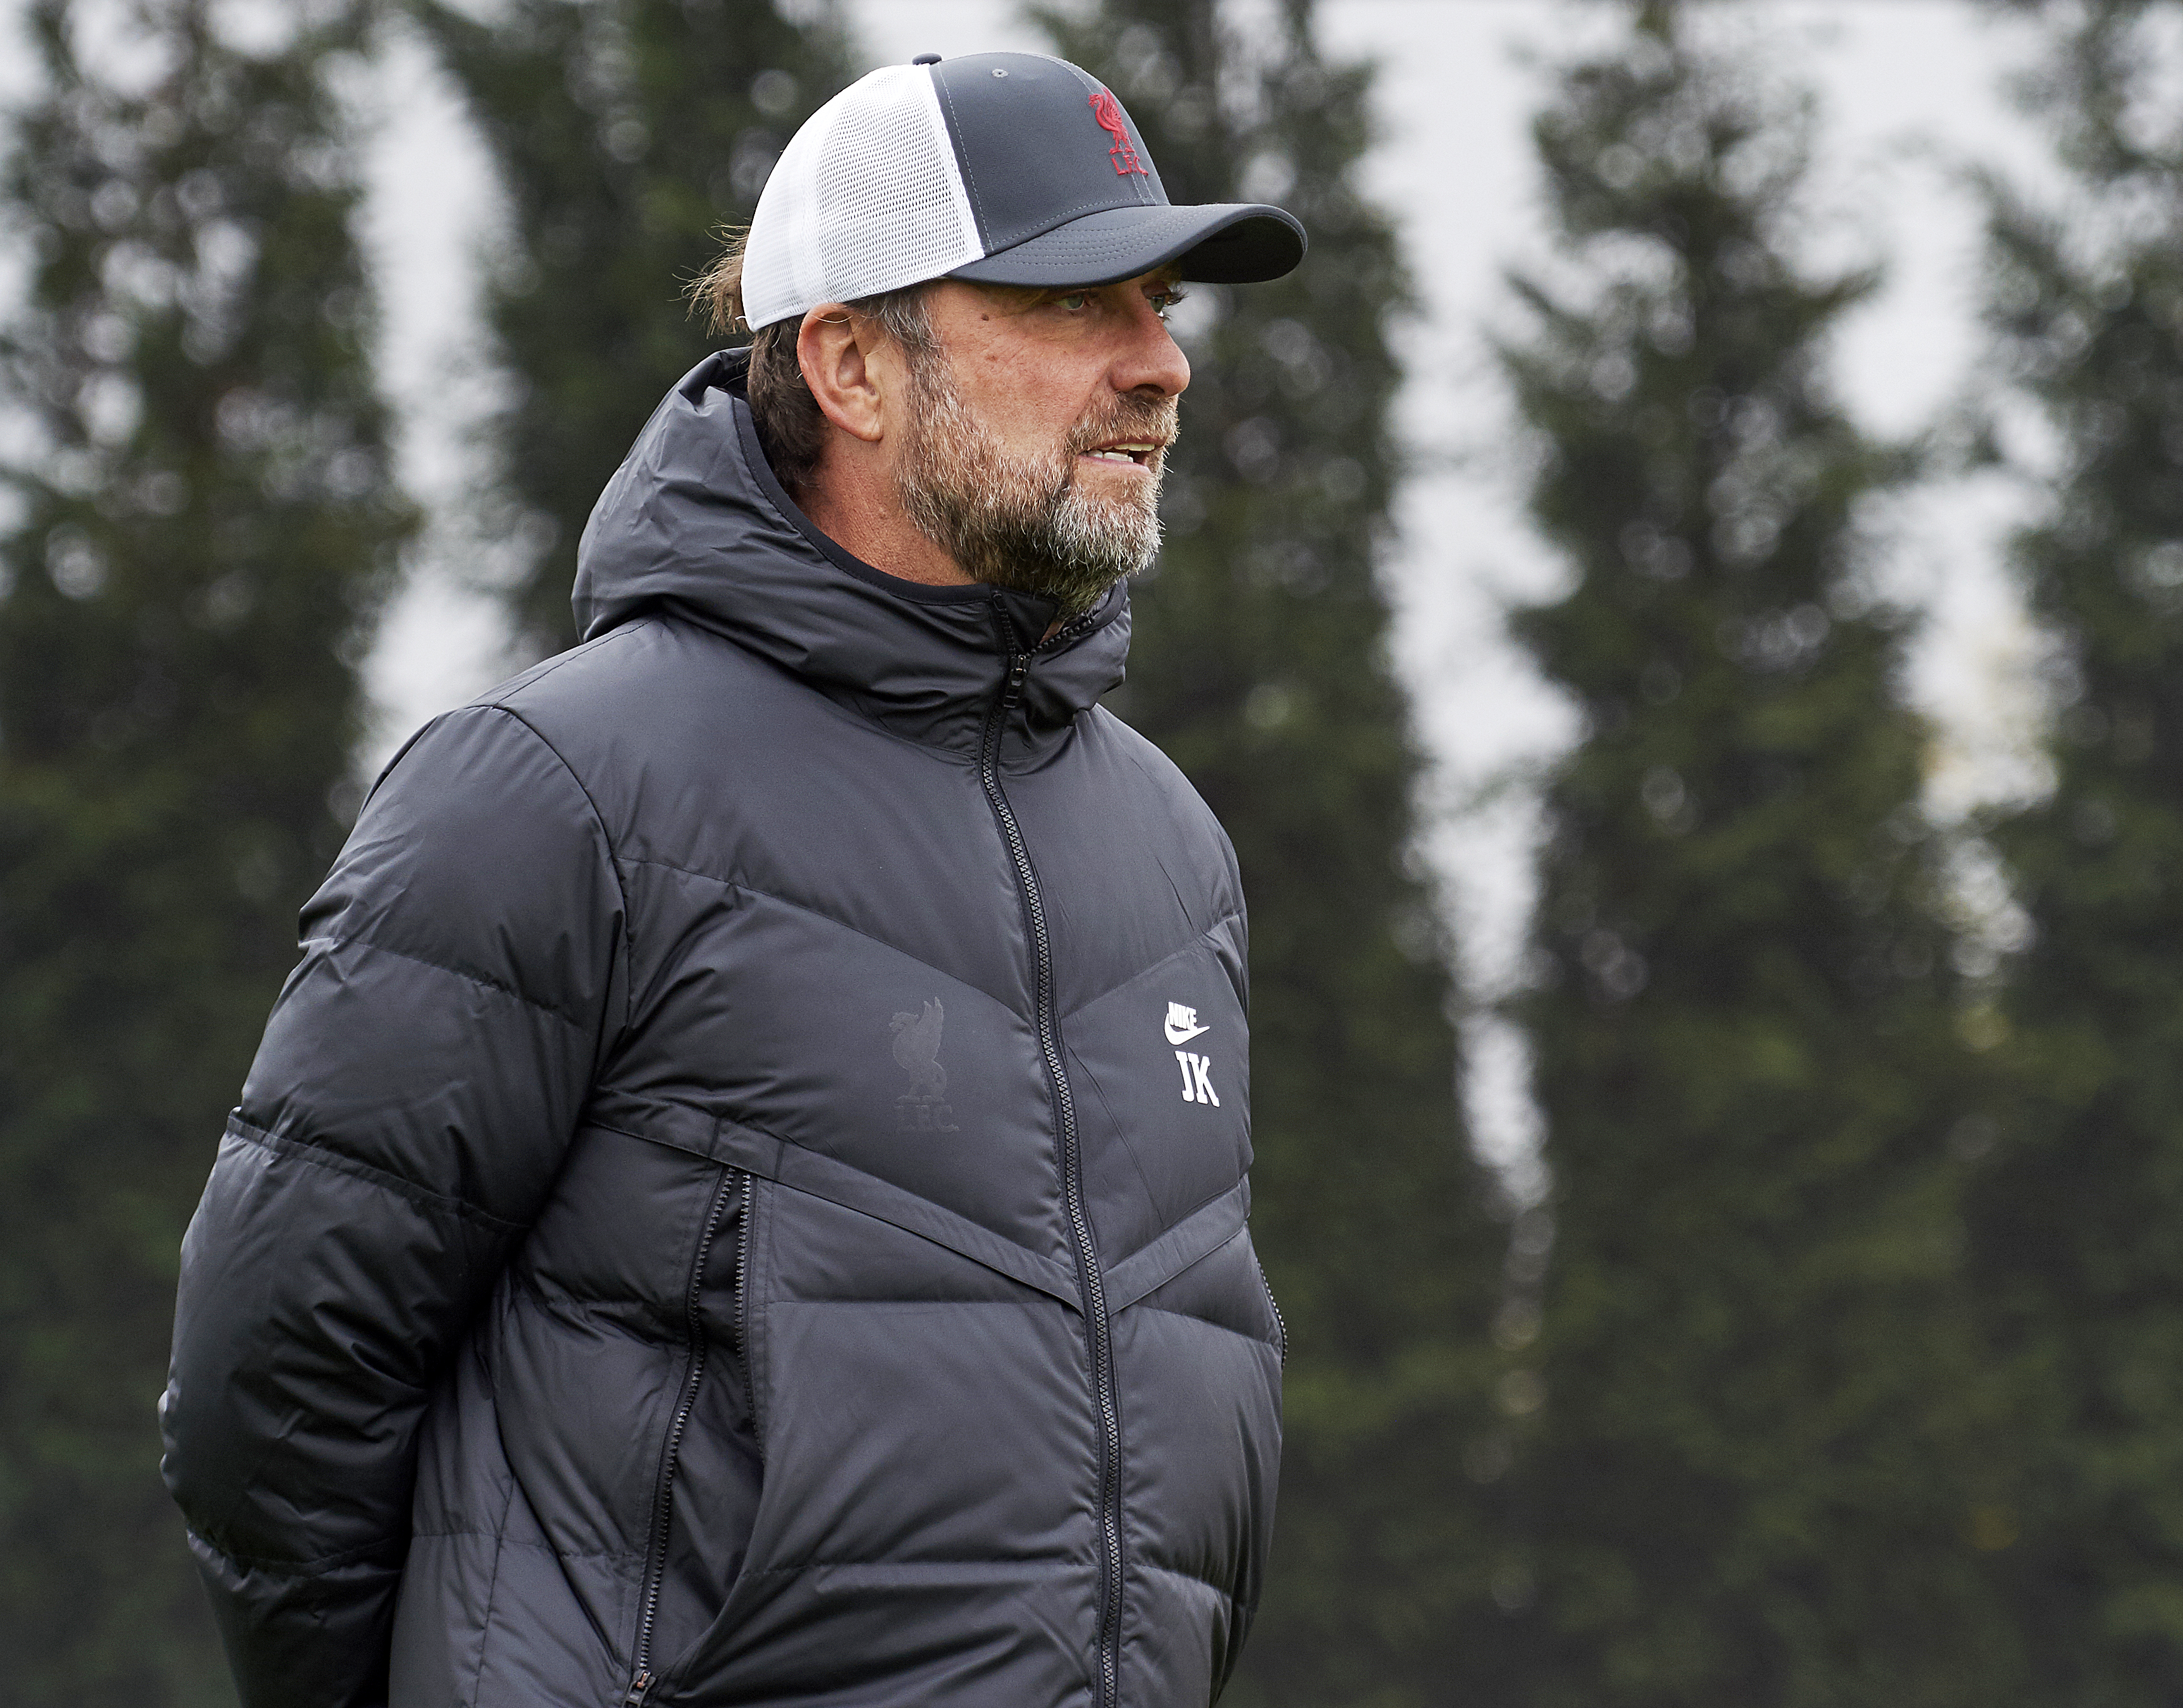 Manager Jurgen Klopp of Liverpool during a training session at AXA Training Centre on October 12, 2021 in Kirkby, England.